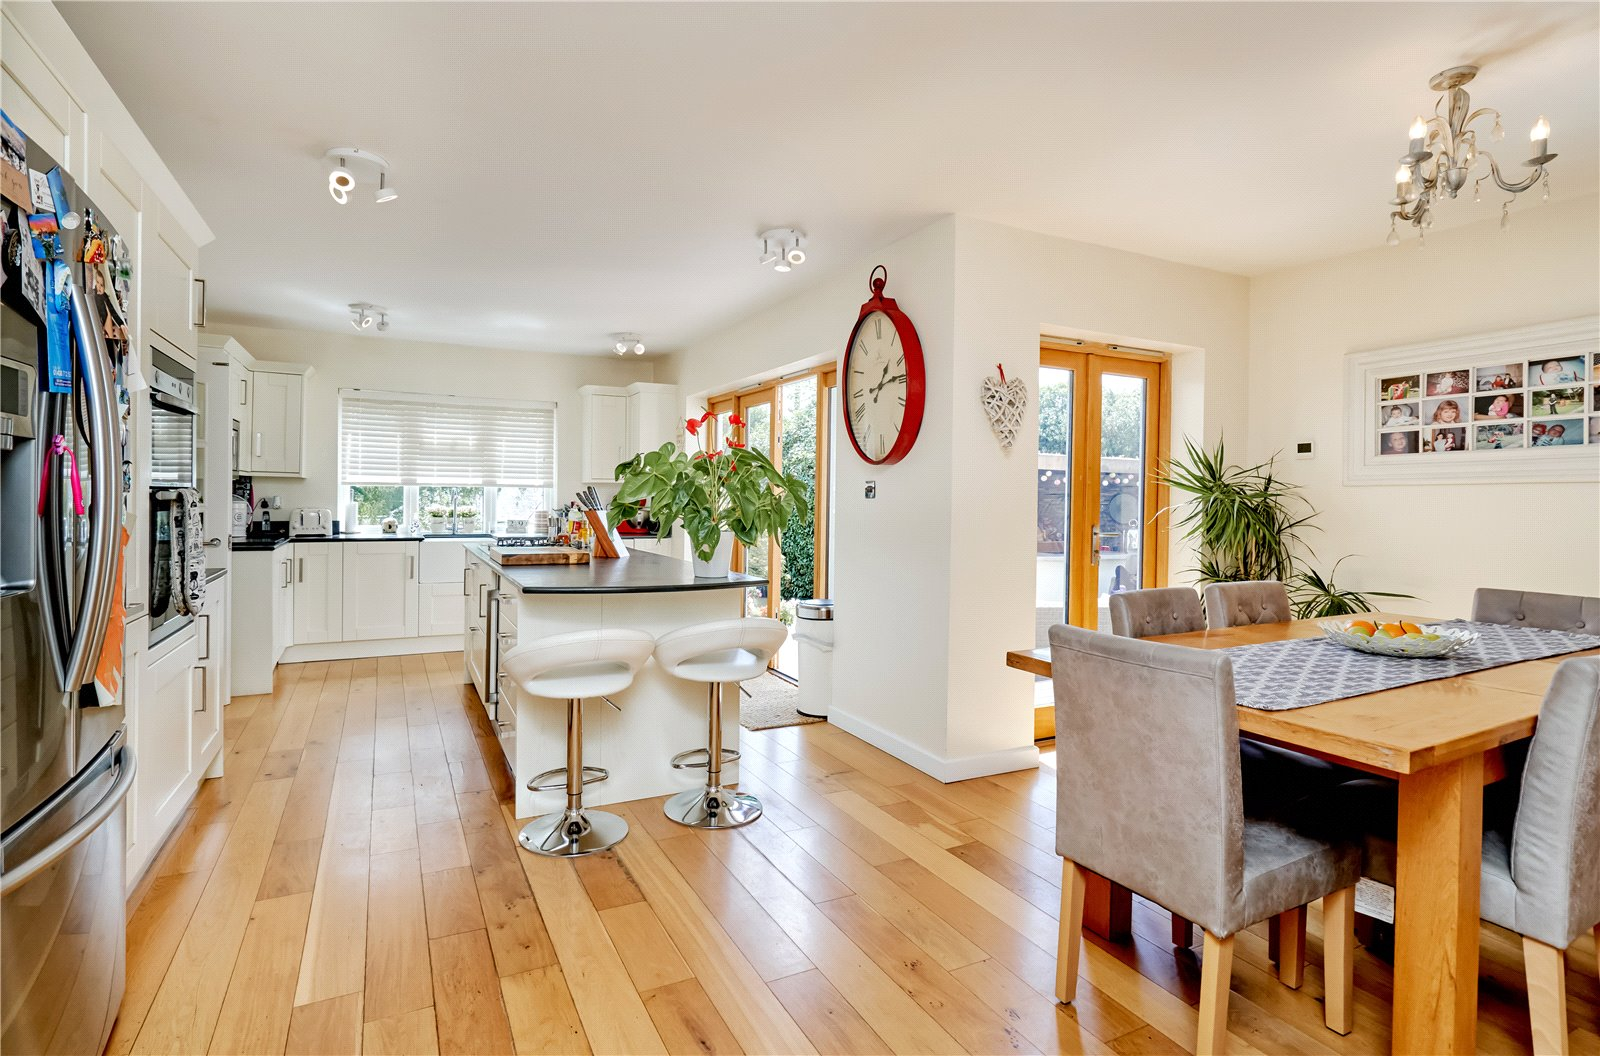 4 bed house for sale in Welwyn, AL6 0QG  - Property Image 3